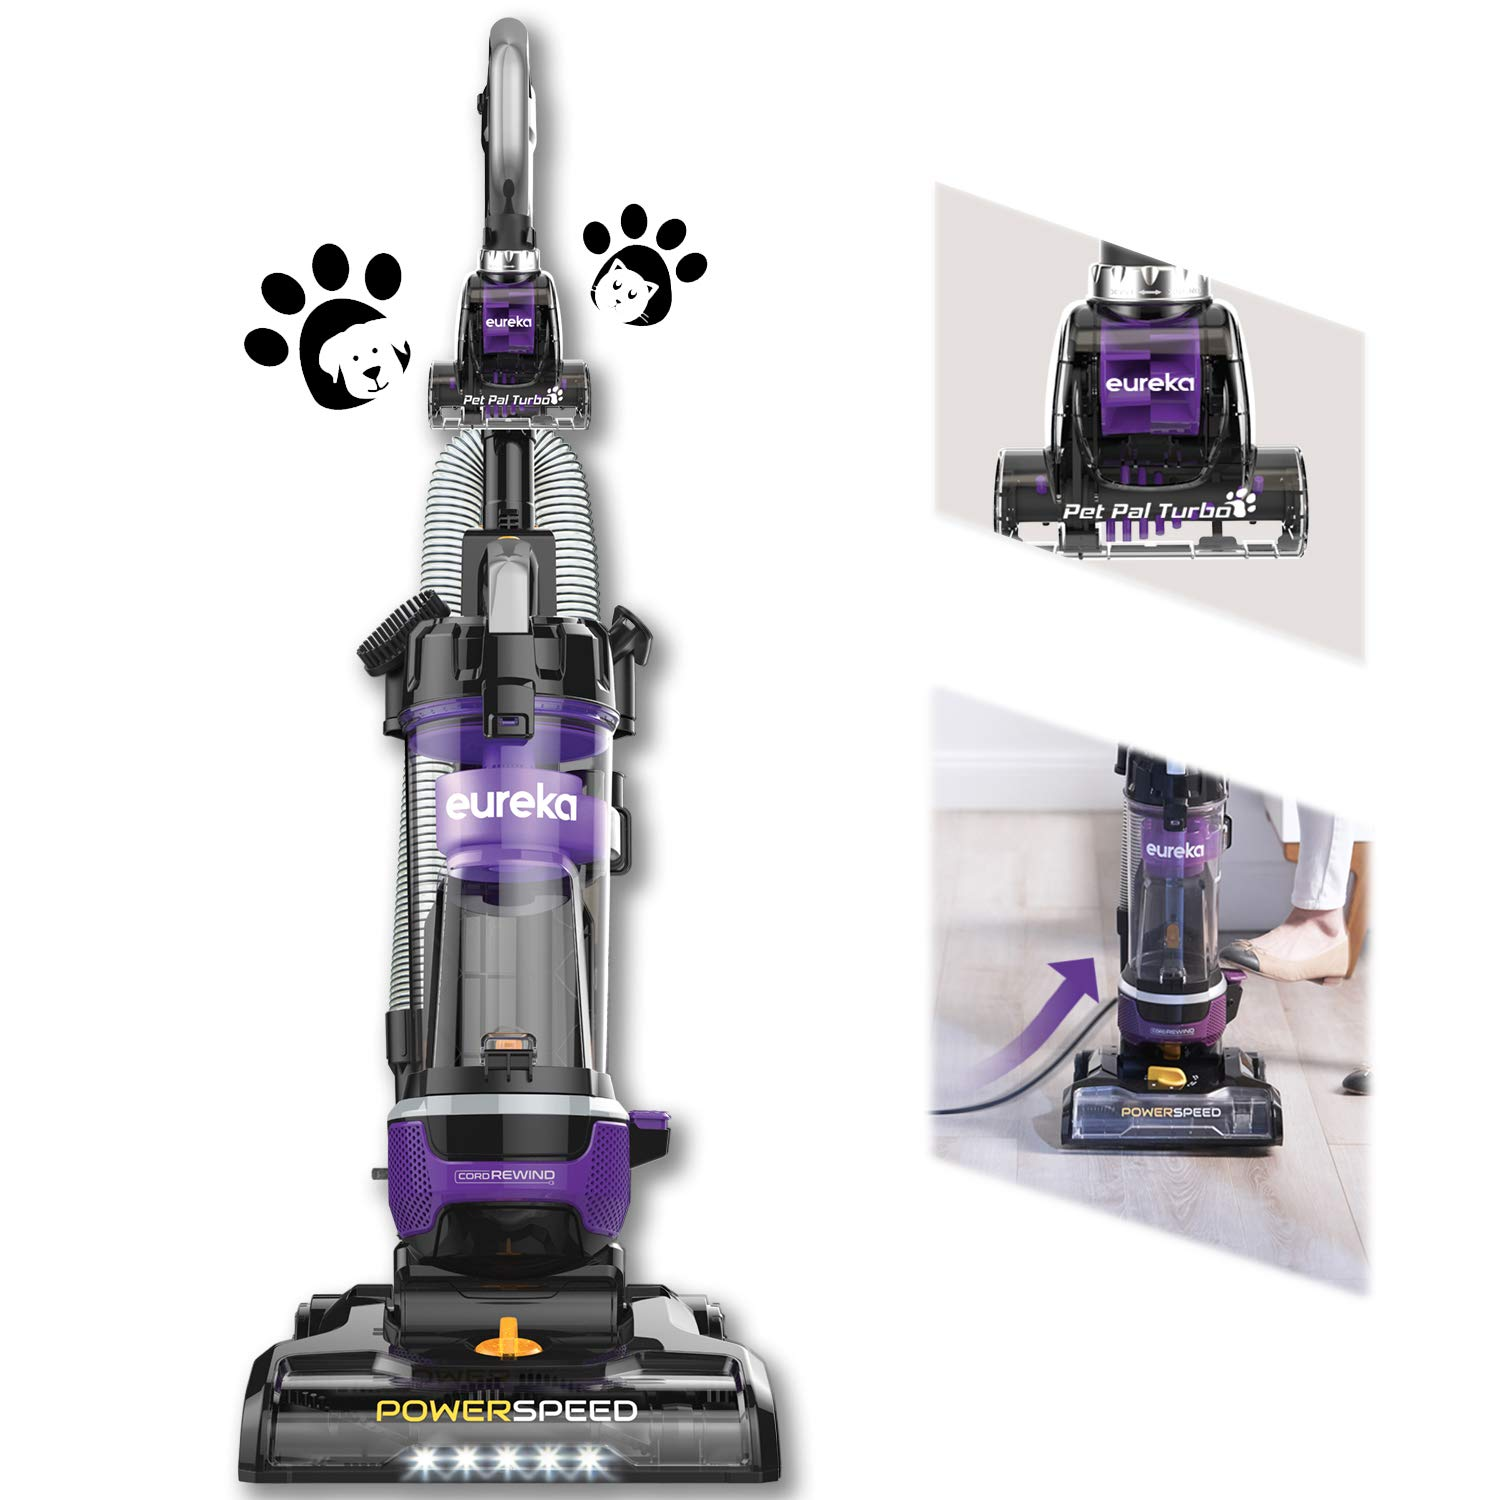 Eureka NEU202 PowerSpeed Lightweight Bagless Upright Vacuum Cleaner with Automatic Cord Rewind and 4 On-Board Tools, Pet + CordRewind, Grape Purple by EUREKA